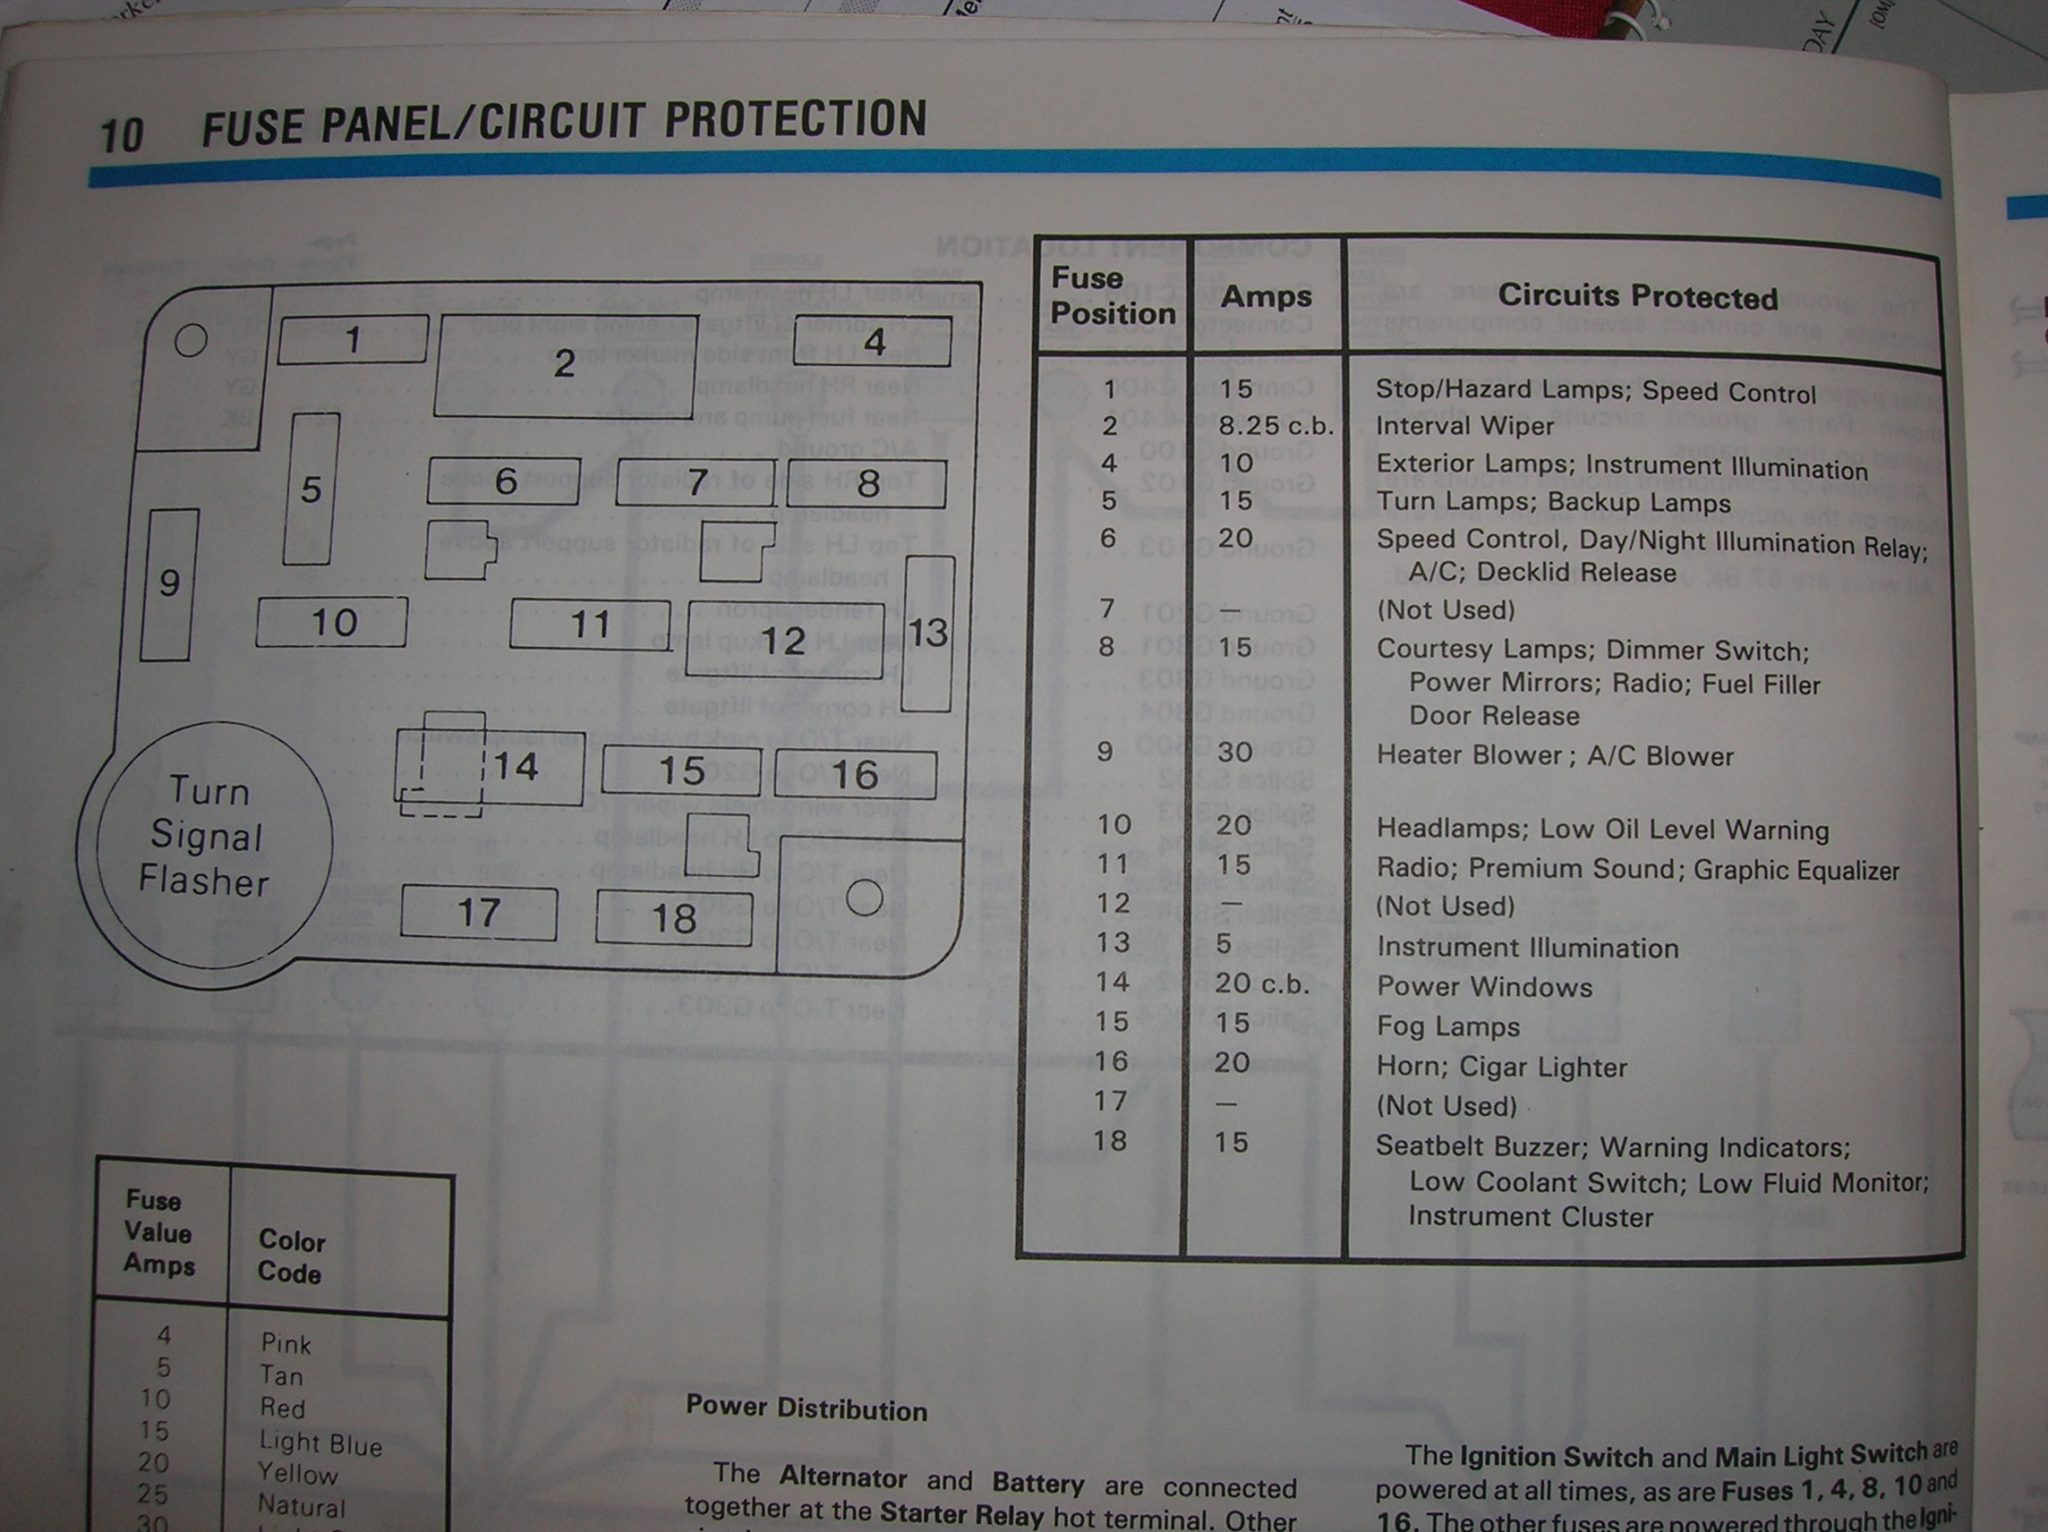 87 mustang fuse box dash 1987 mustang engine bay fuse box diagram 1995 mustang fuse box diagram at reclaimingppi.co